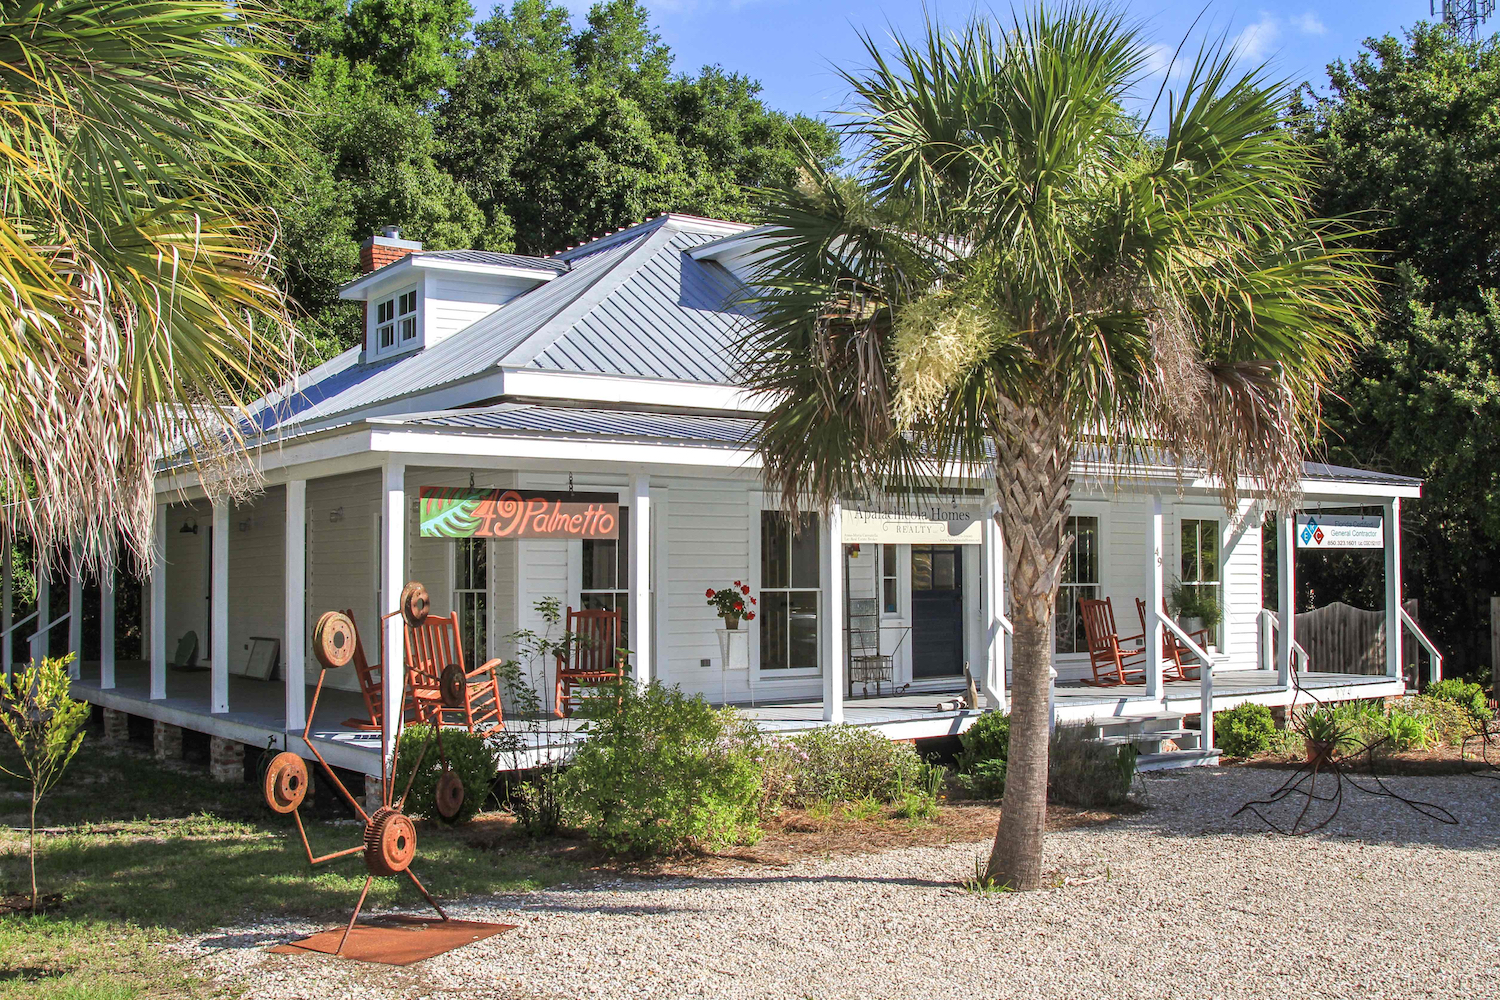 A unique destination for the discerning traveler - The Gallery at 49 Palmetto features contemporary art with an emphasis on local and regional Folk Art. There are rotating exhibits, events and workshops year round that keep the gallery flowing with fresh and exciting art.